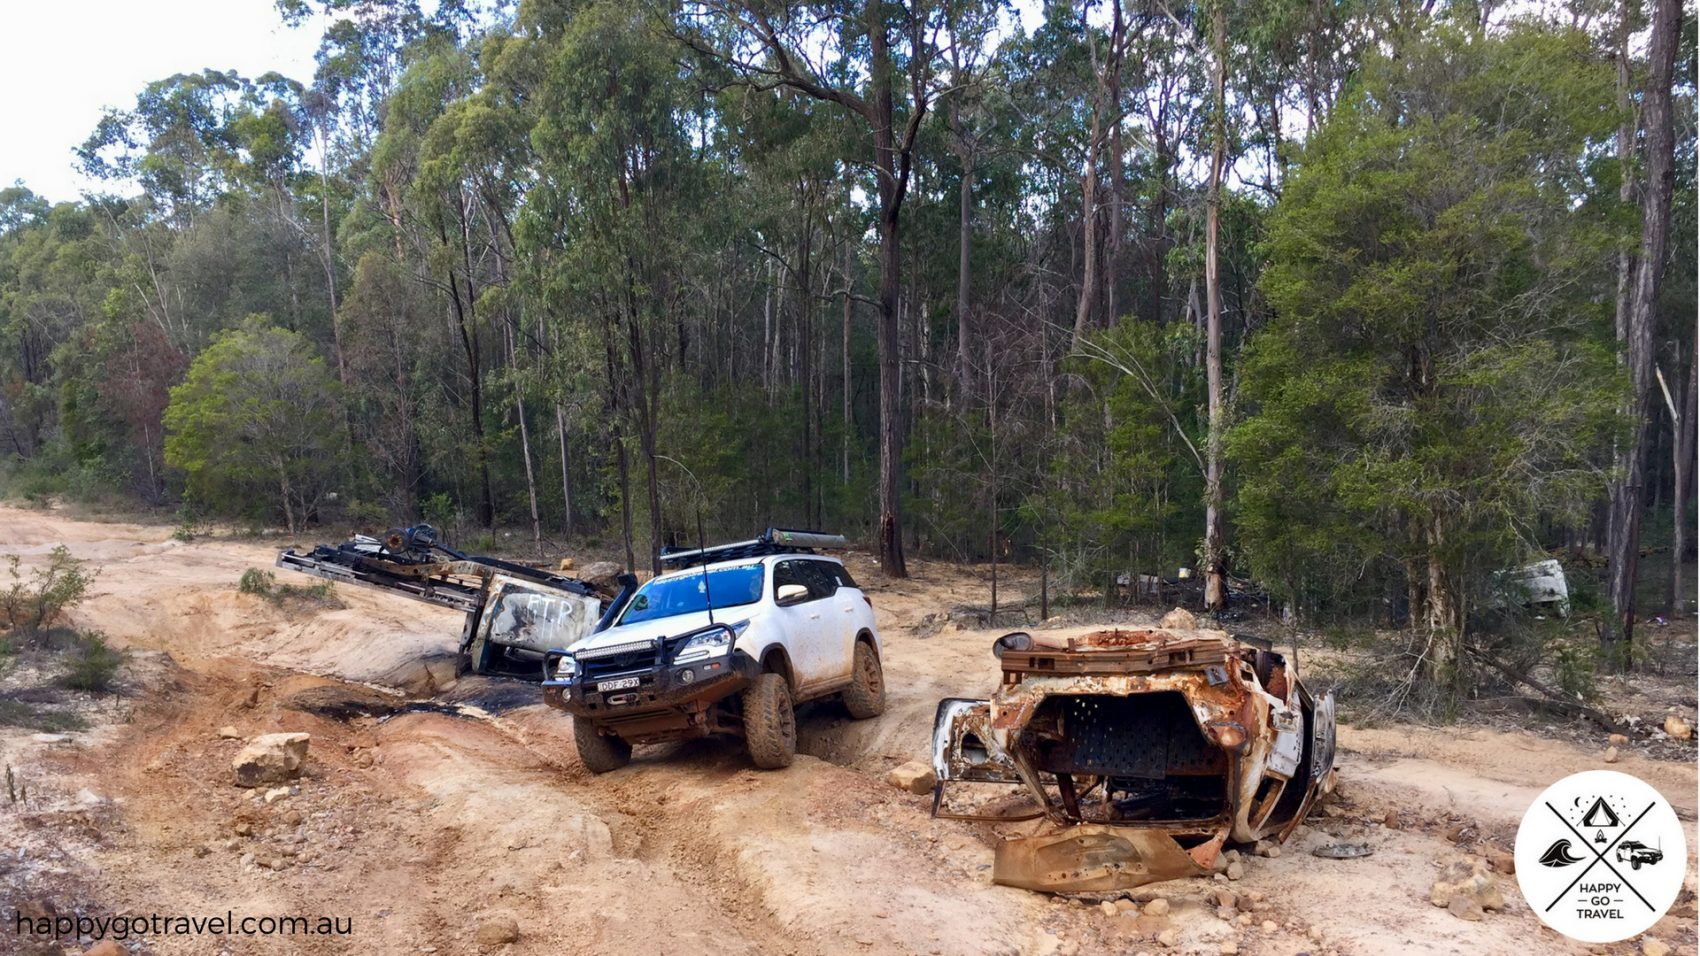 Toyota Fortuner 4wd diff drop suspension flex. Aberdare State Forest